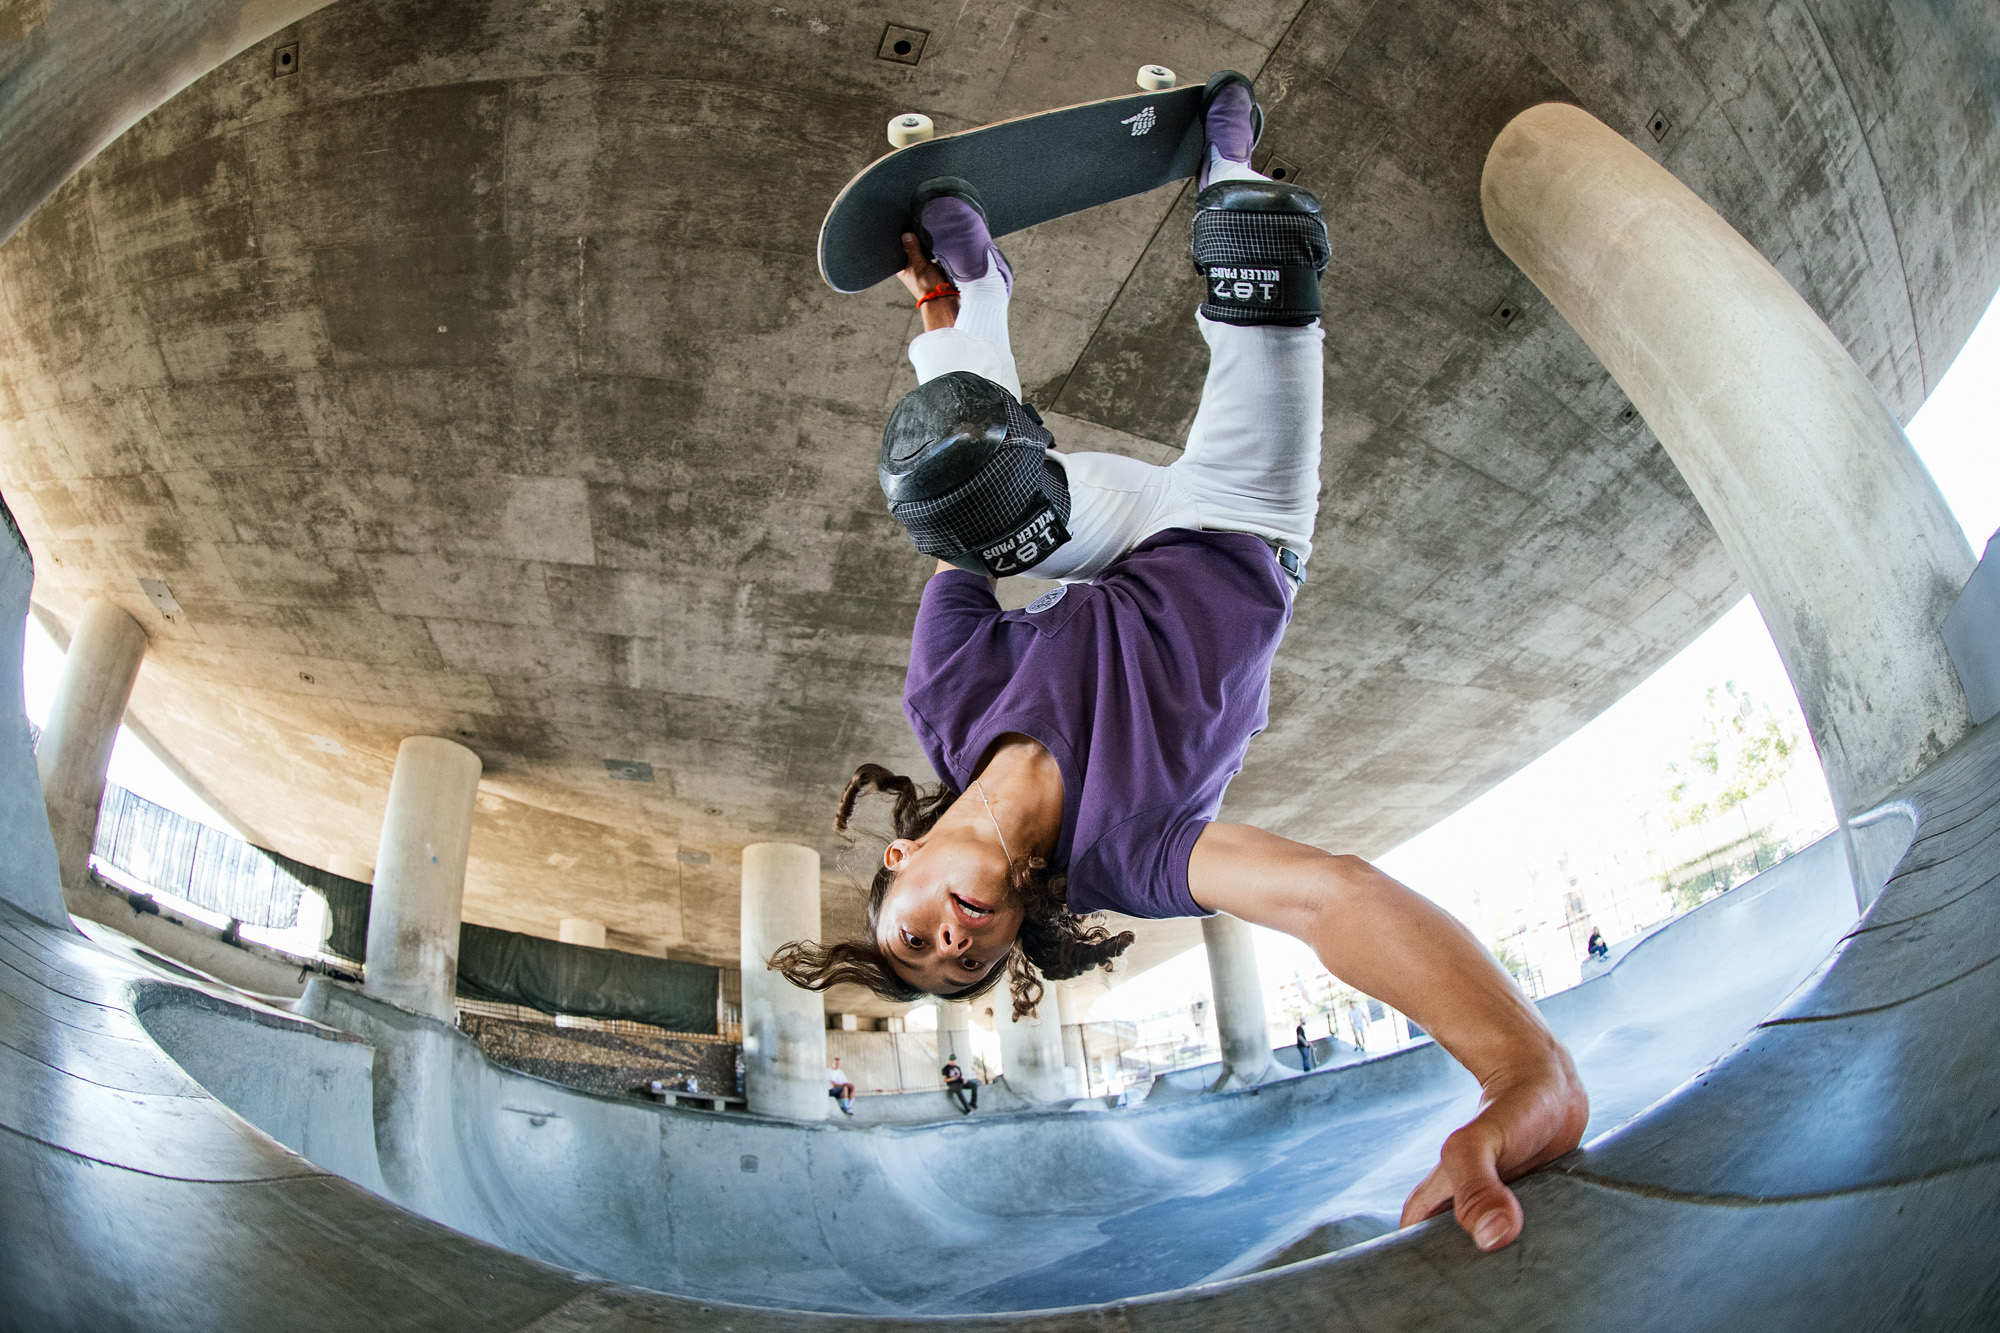 PRO SKATER LIZZIE ARMANTO LAUNCHES NEW